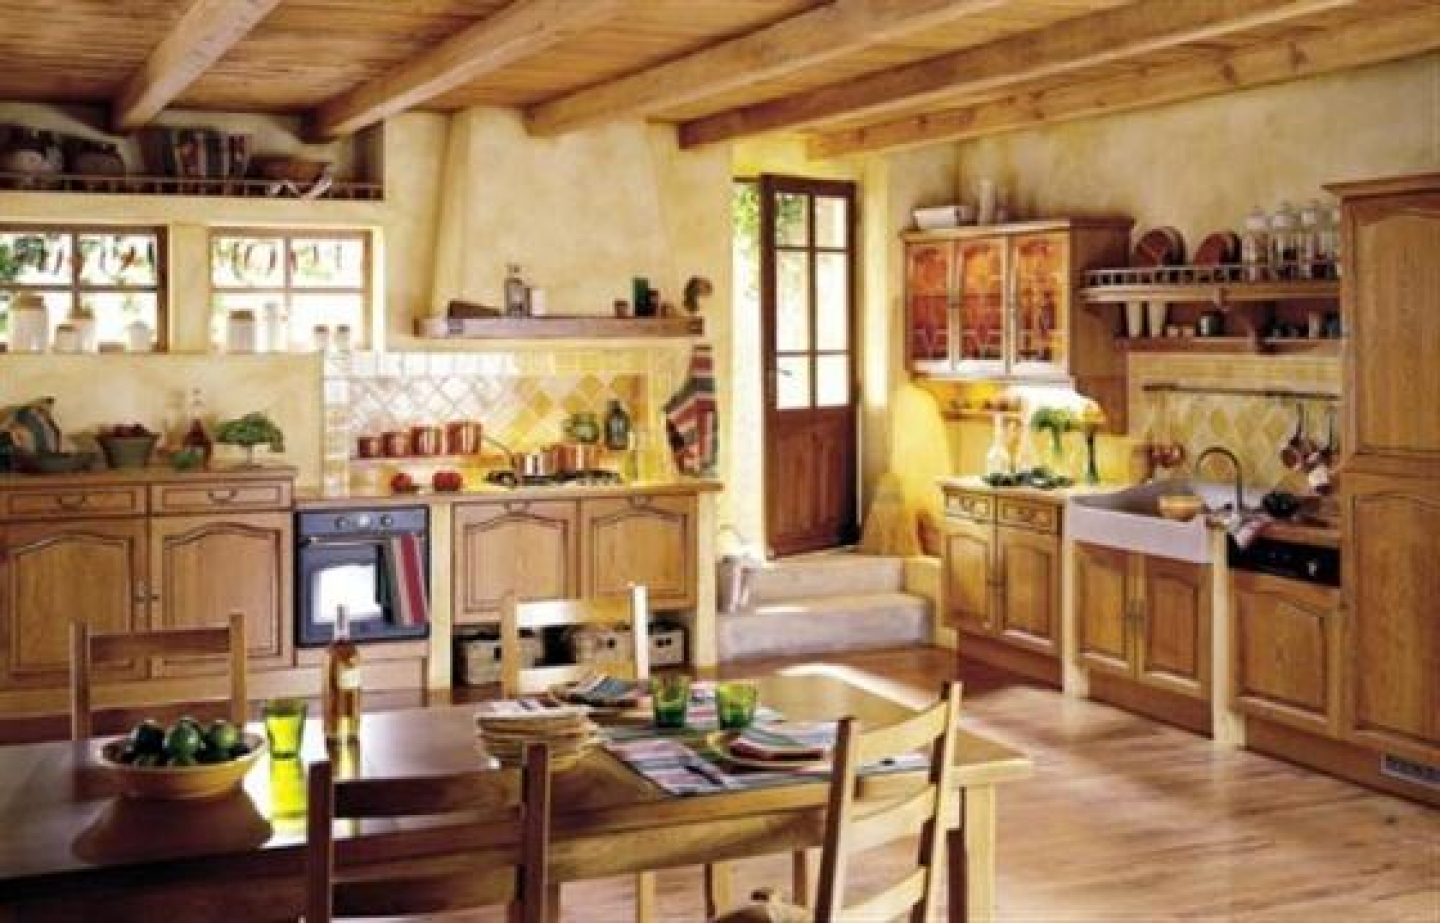 French country kitchen Design Ideas » Design and Ideas